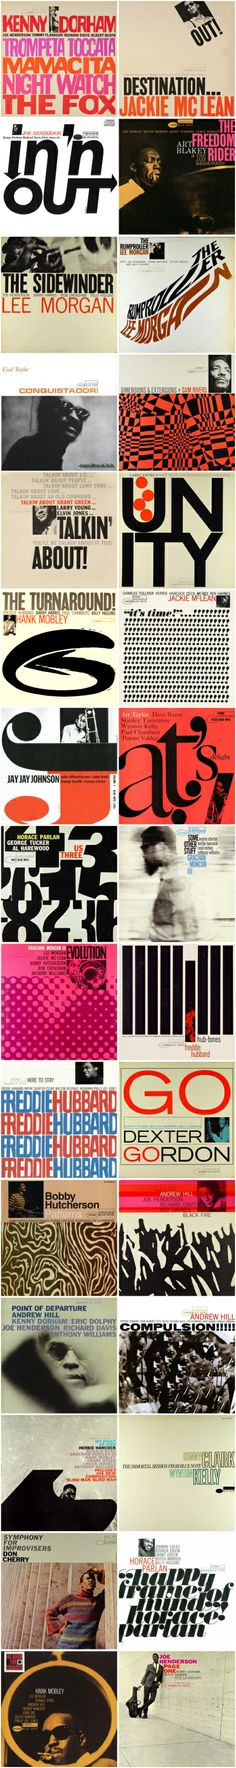 Some stunning LP covers from the Blue Note records catalogue.